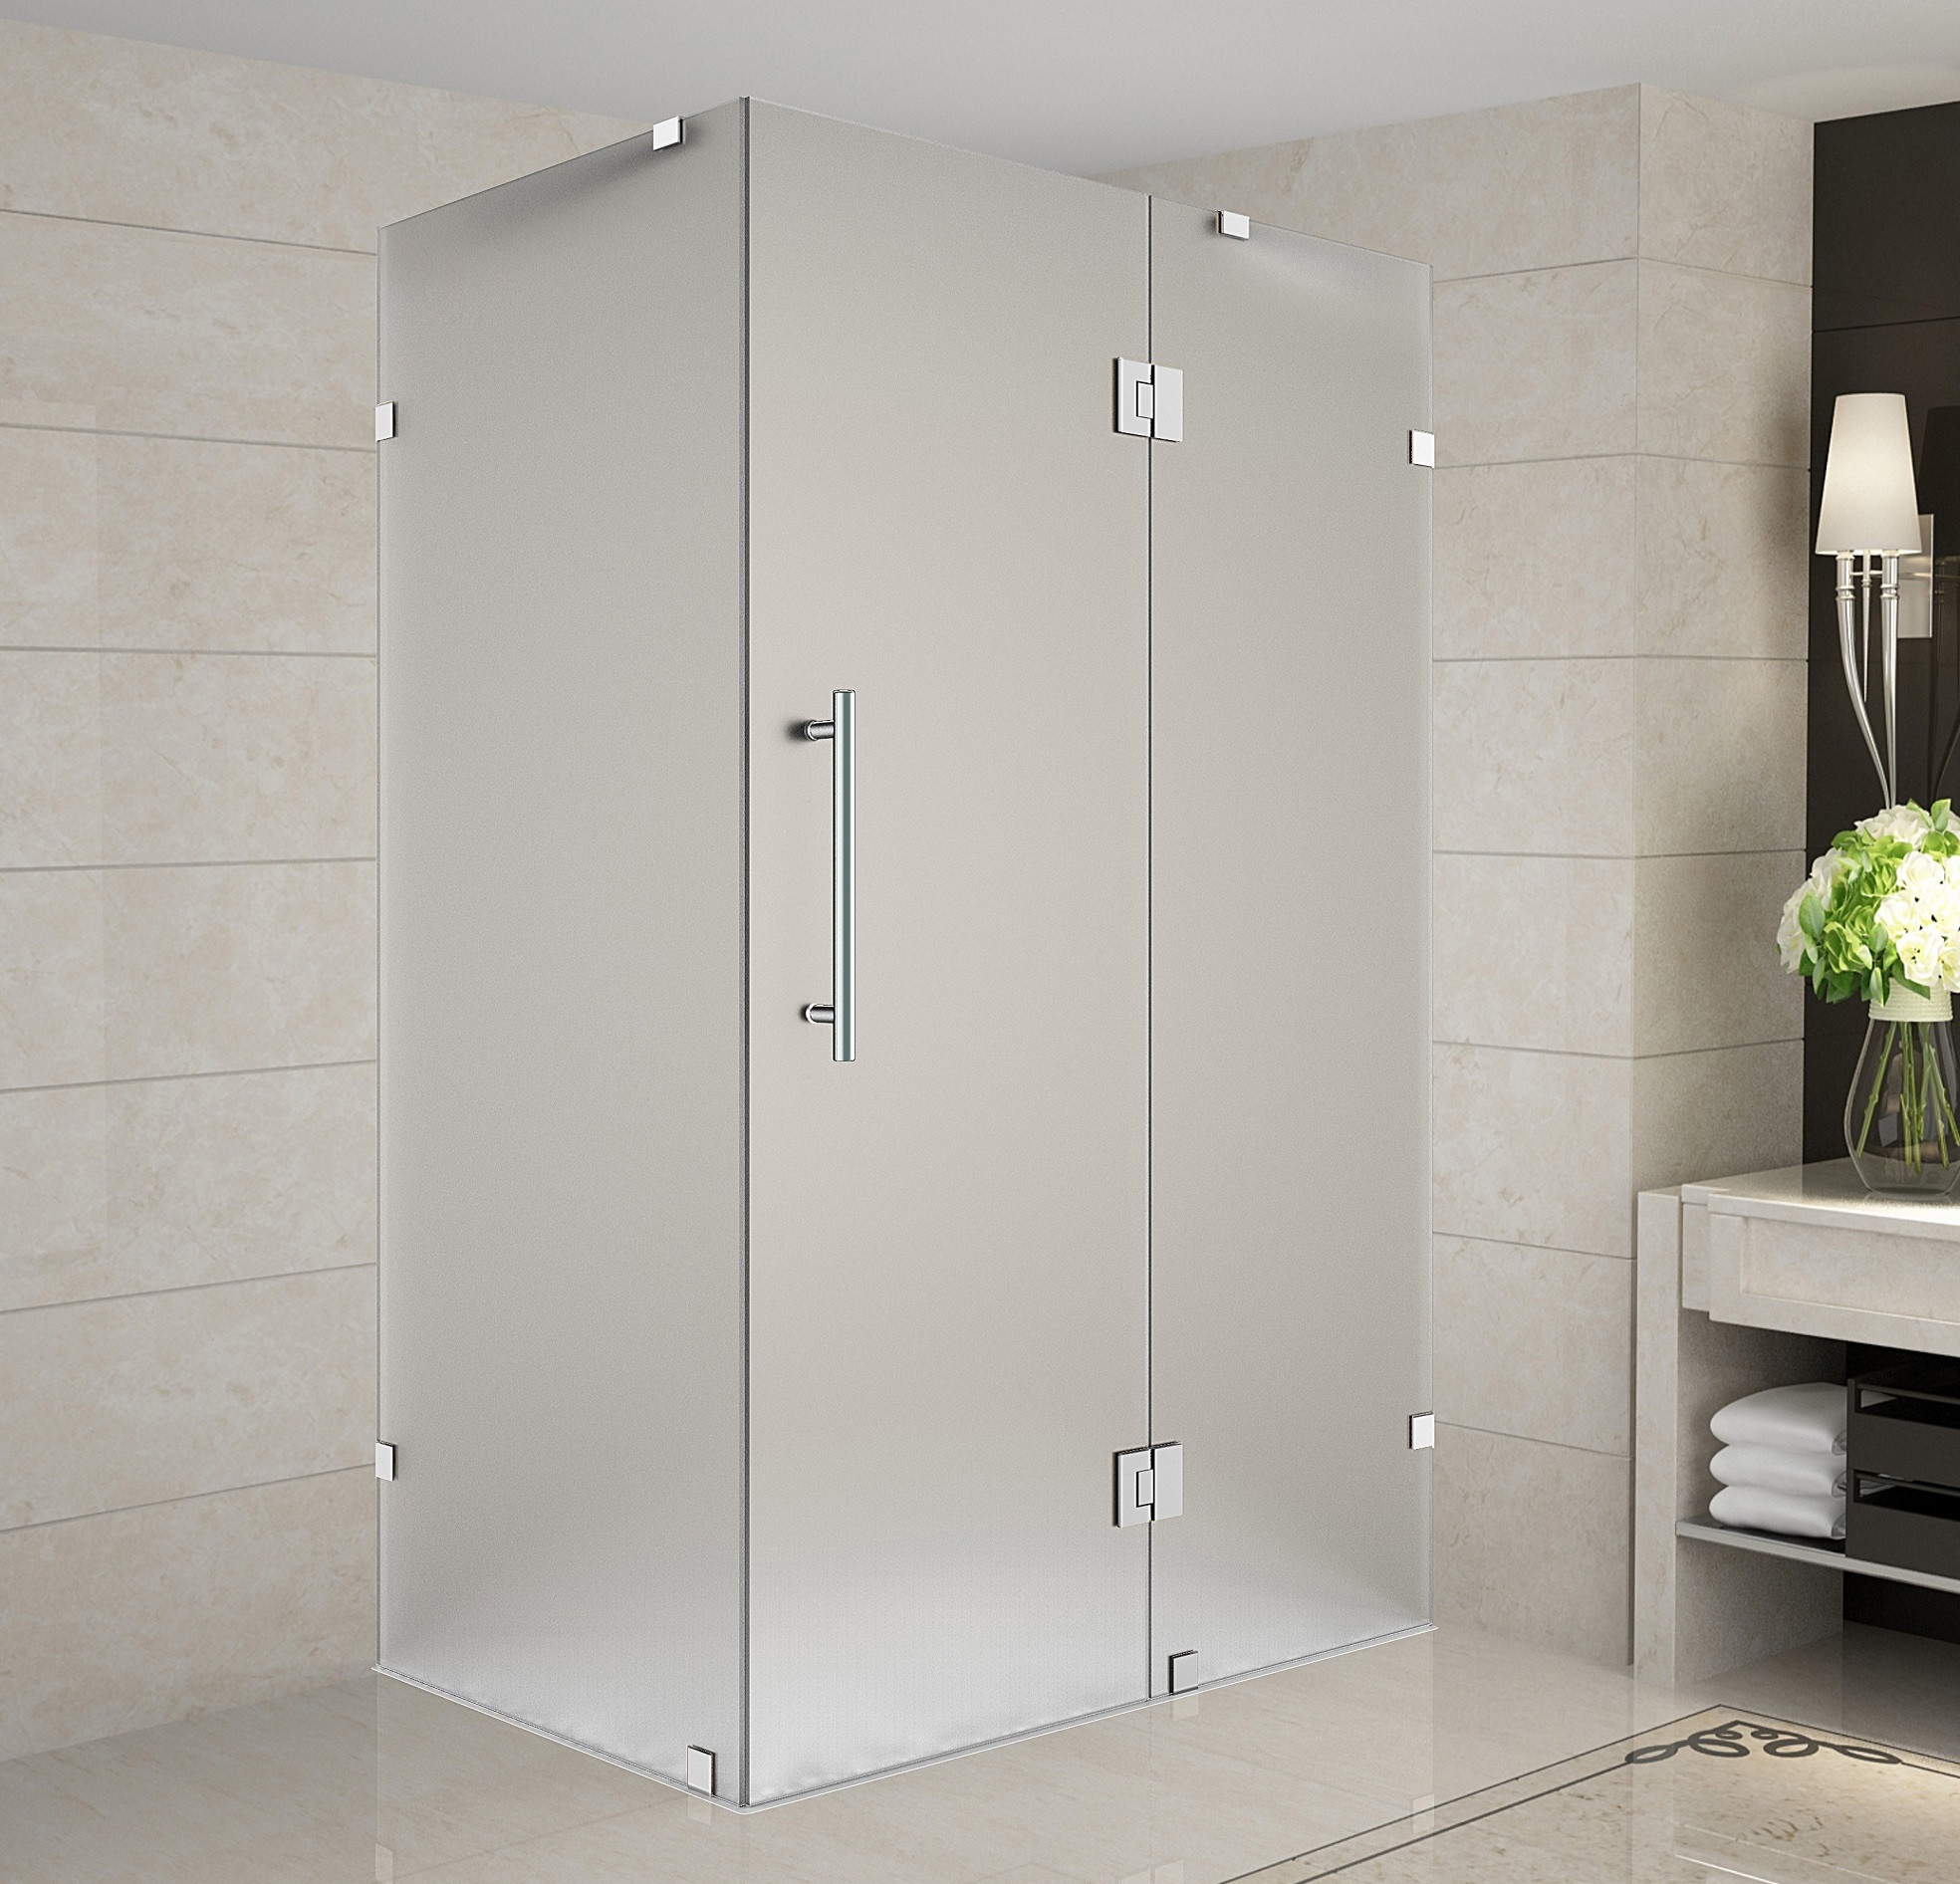 Aston Global SEN987F-SS-3336-10 Frameless Frosted Glass Shower Enclosure In Stainless Steel